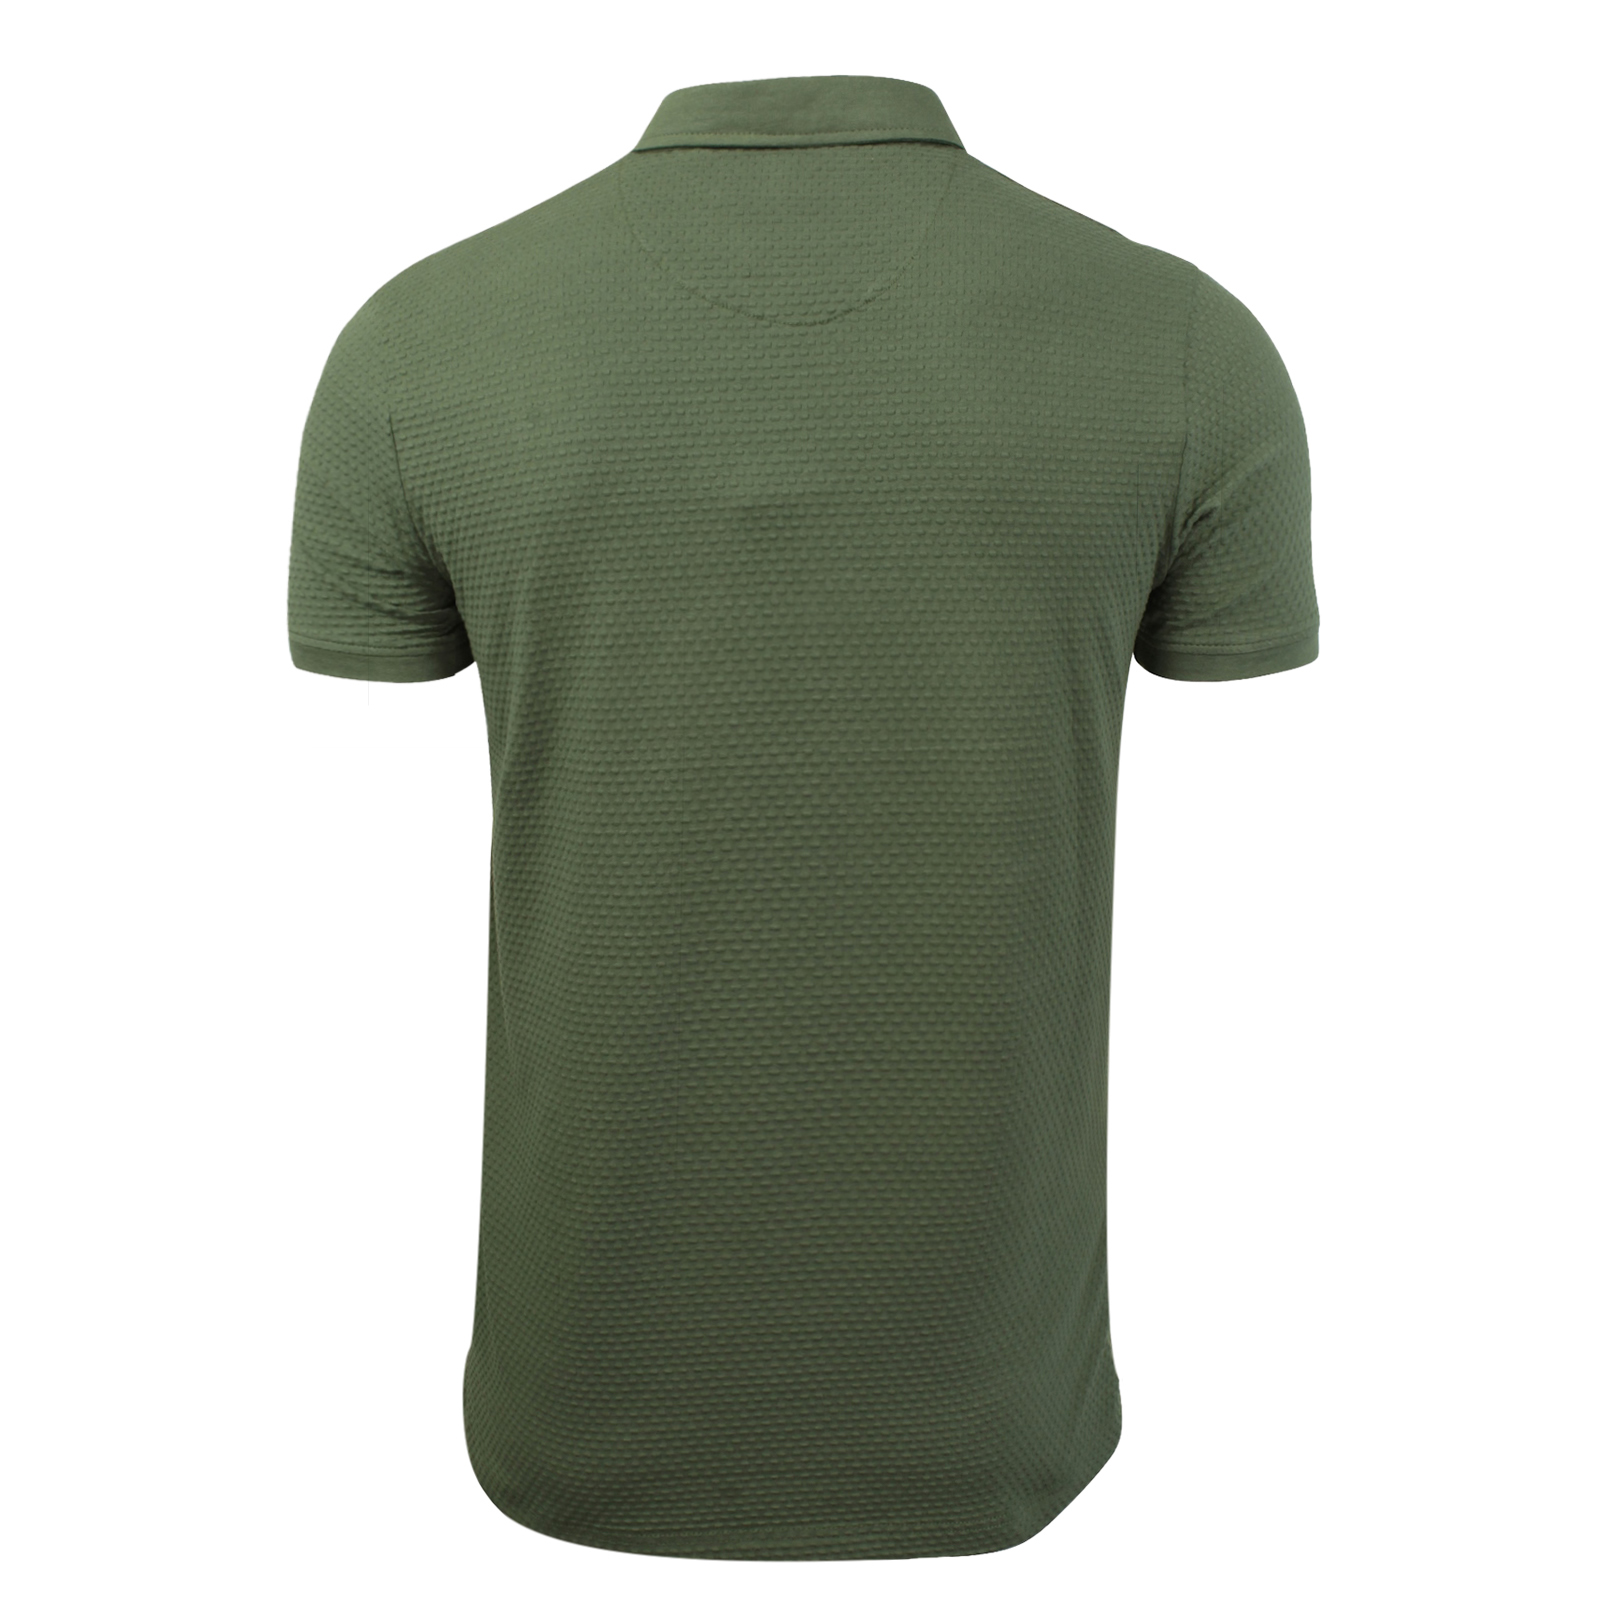 Mens-Polo-T-Shirt-Brave-Soul-Shield-Cotton-Collared-Short-Sleeve-Casual-Top thumbnail 6